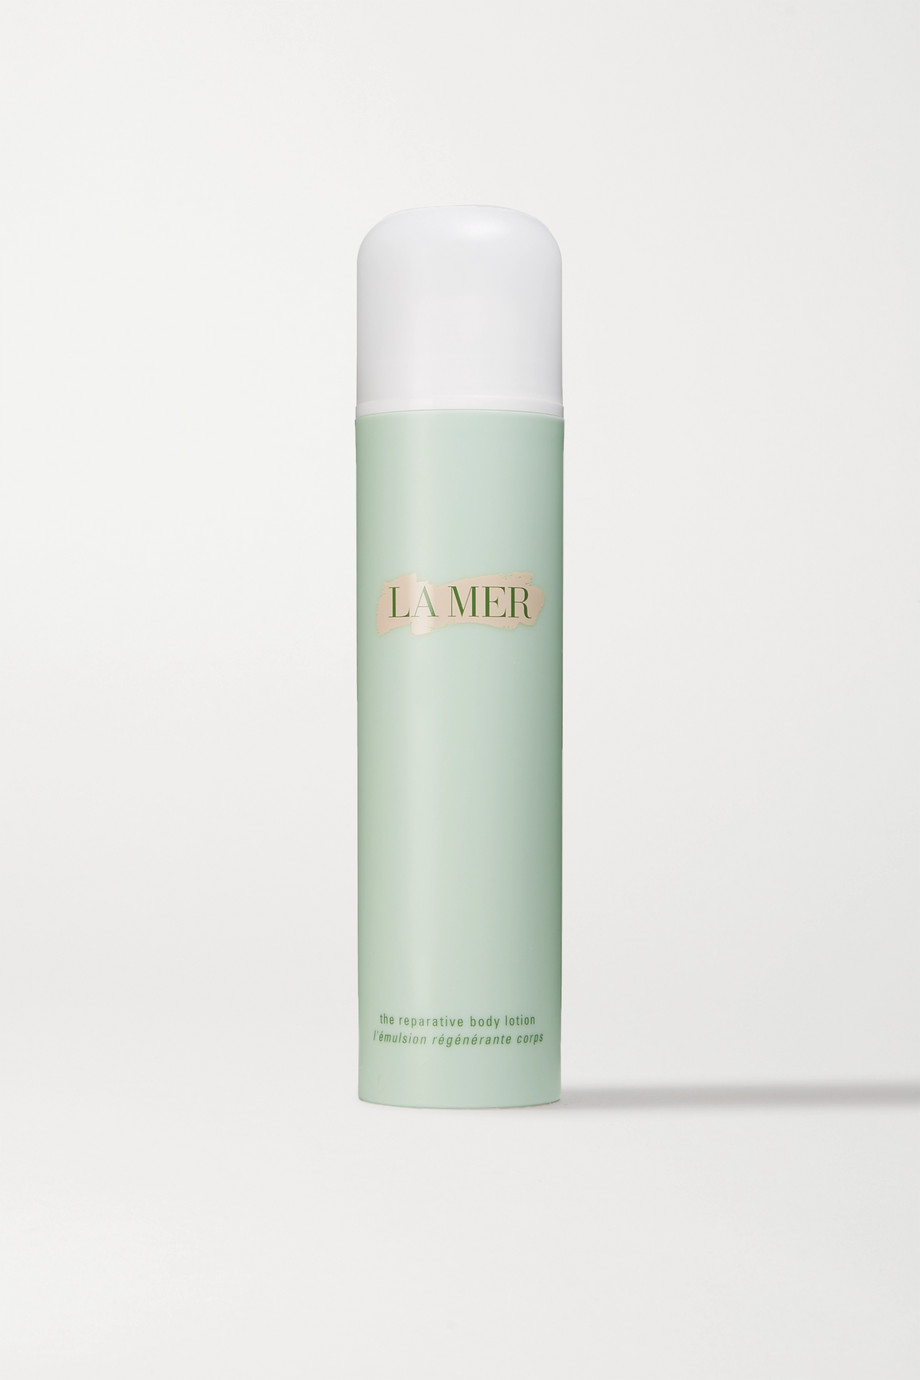 La Mer The Reparative Body Lotion, 200ml